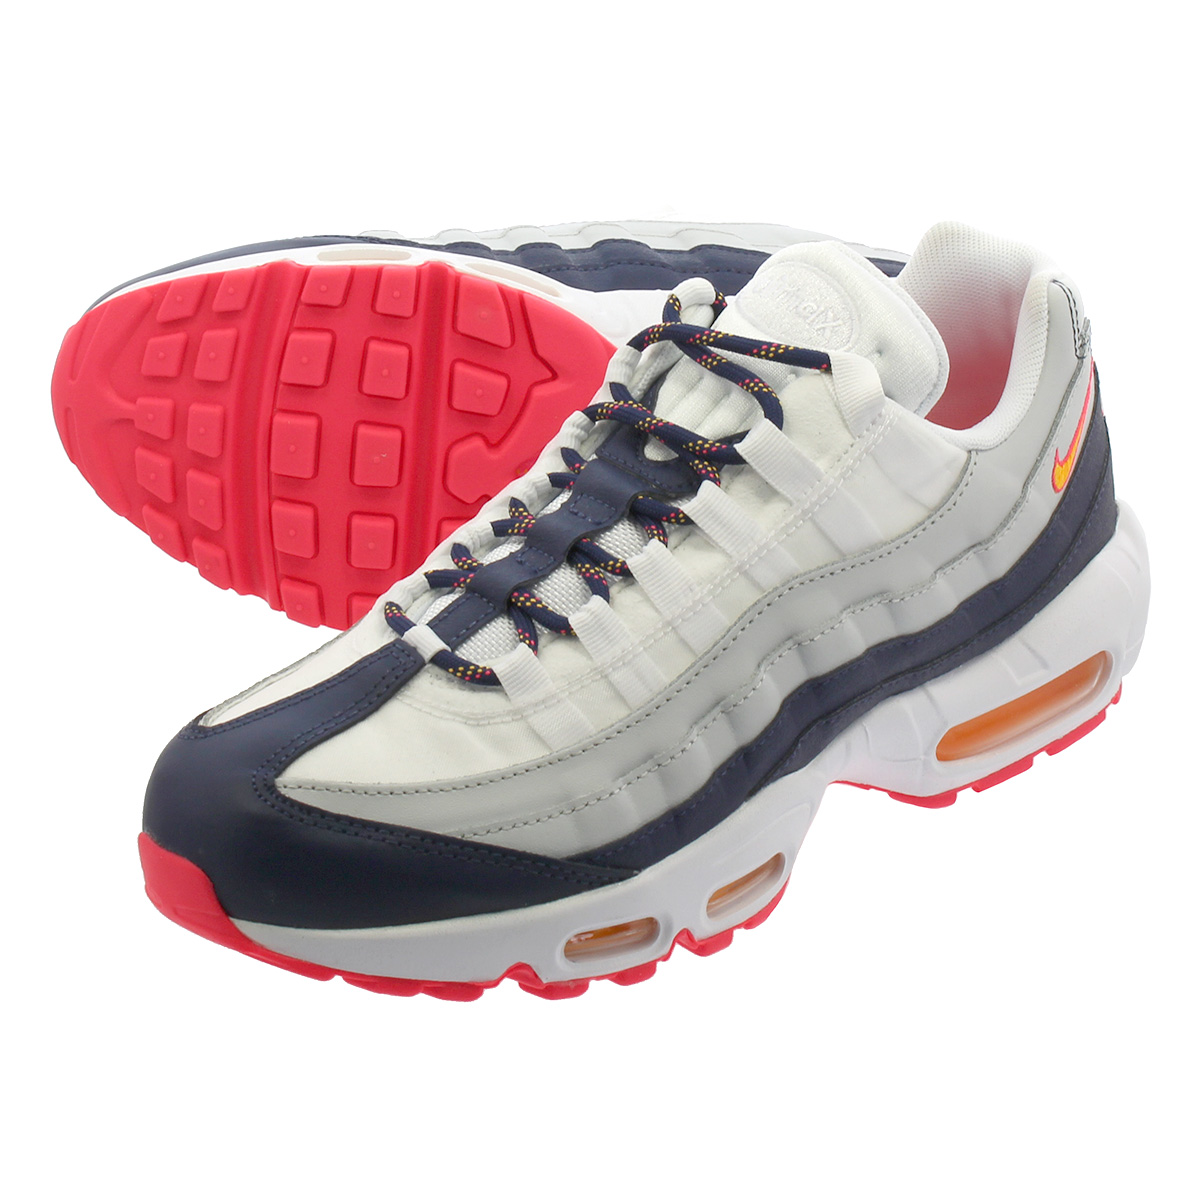 5c43ea823c LOWTEX PLUS: NIKE WMNS AIR MAX 95 Nike women Air Max 95 PURE  PLATINUM/MIDNIGHT NAVY/LASER ORANGE 307,960-405 | Rakuten Global Market